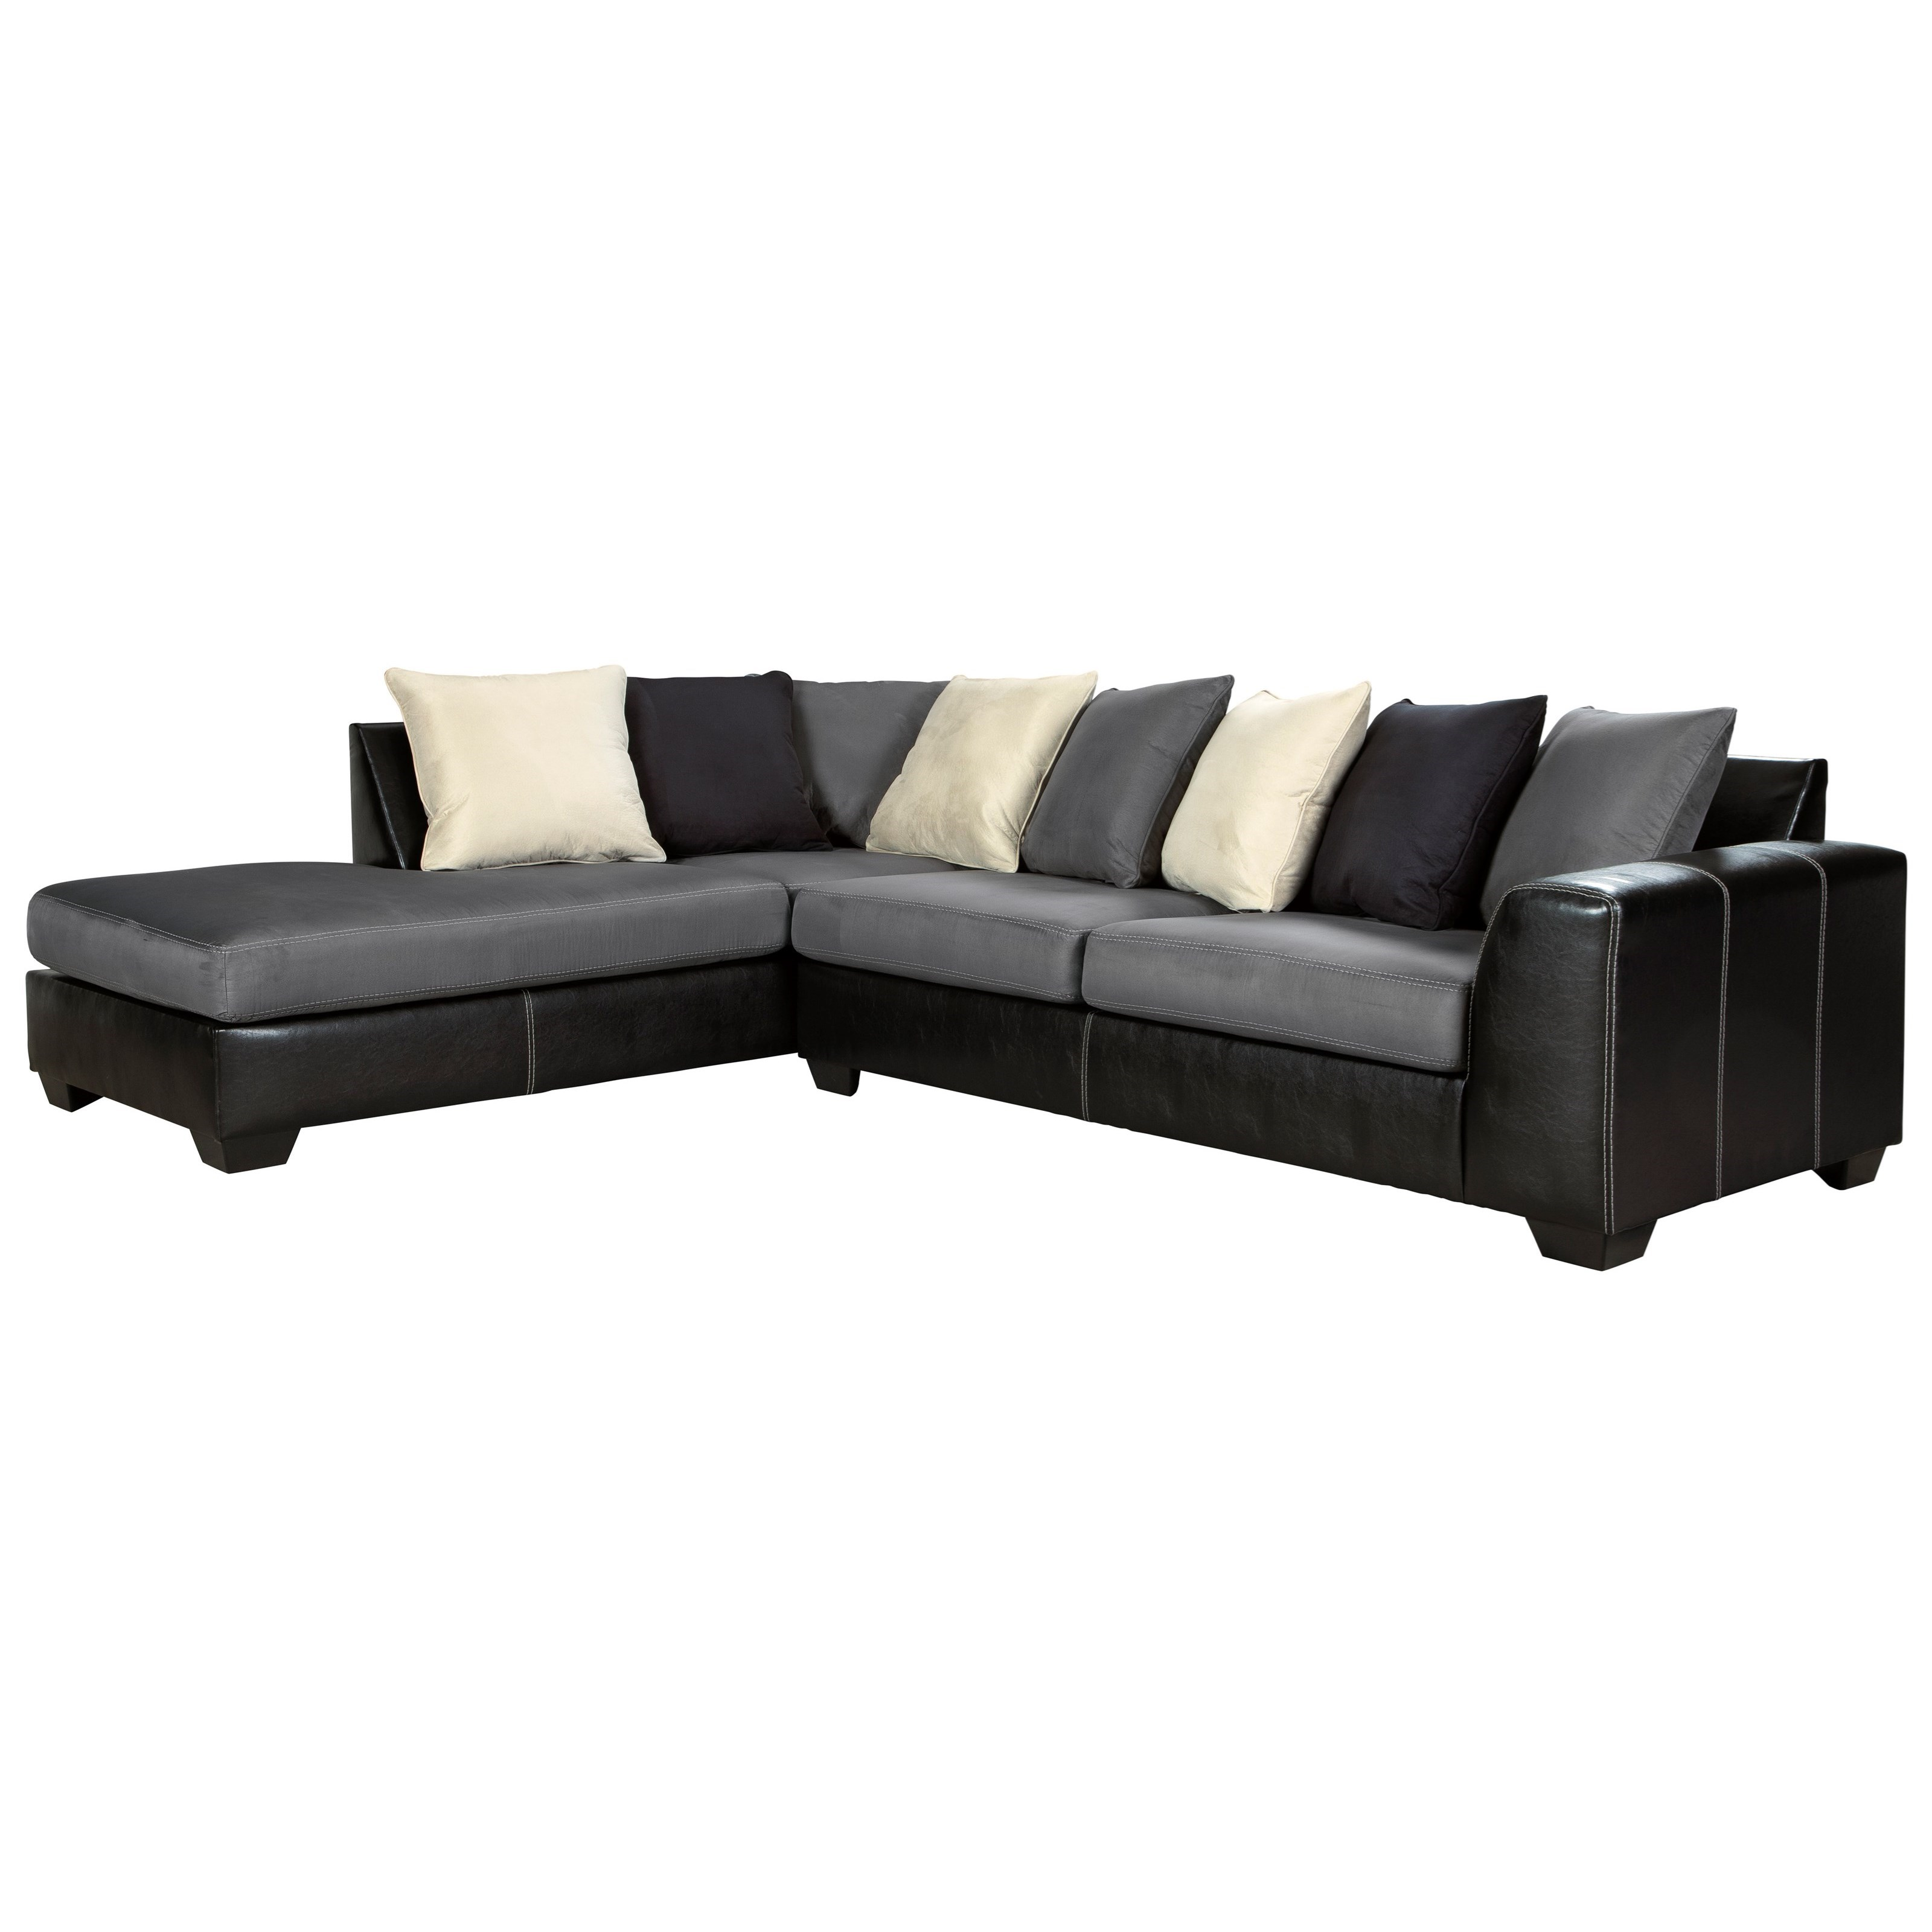 Jacurso Sectional Sofa with Chaise by Ashley (Signature Design) at Johnny Janosik